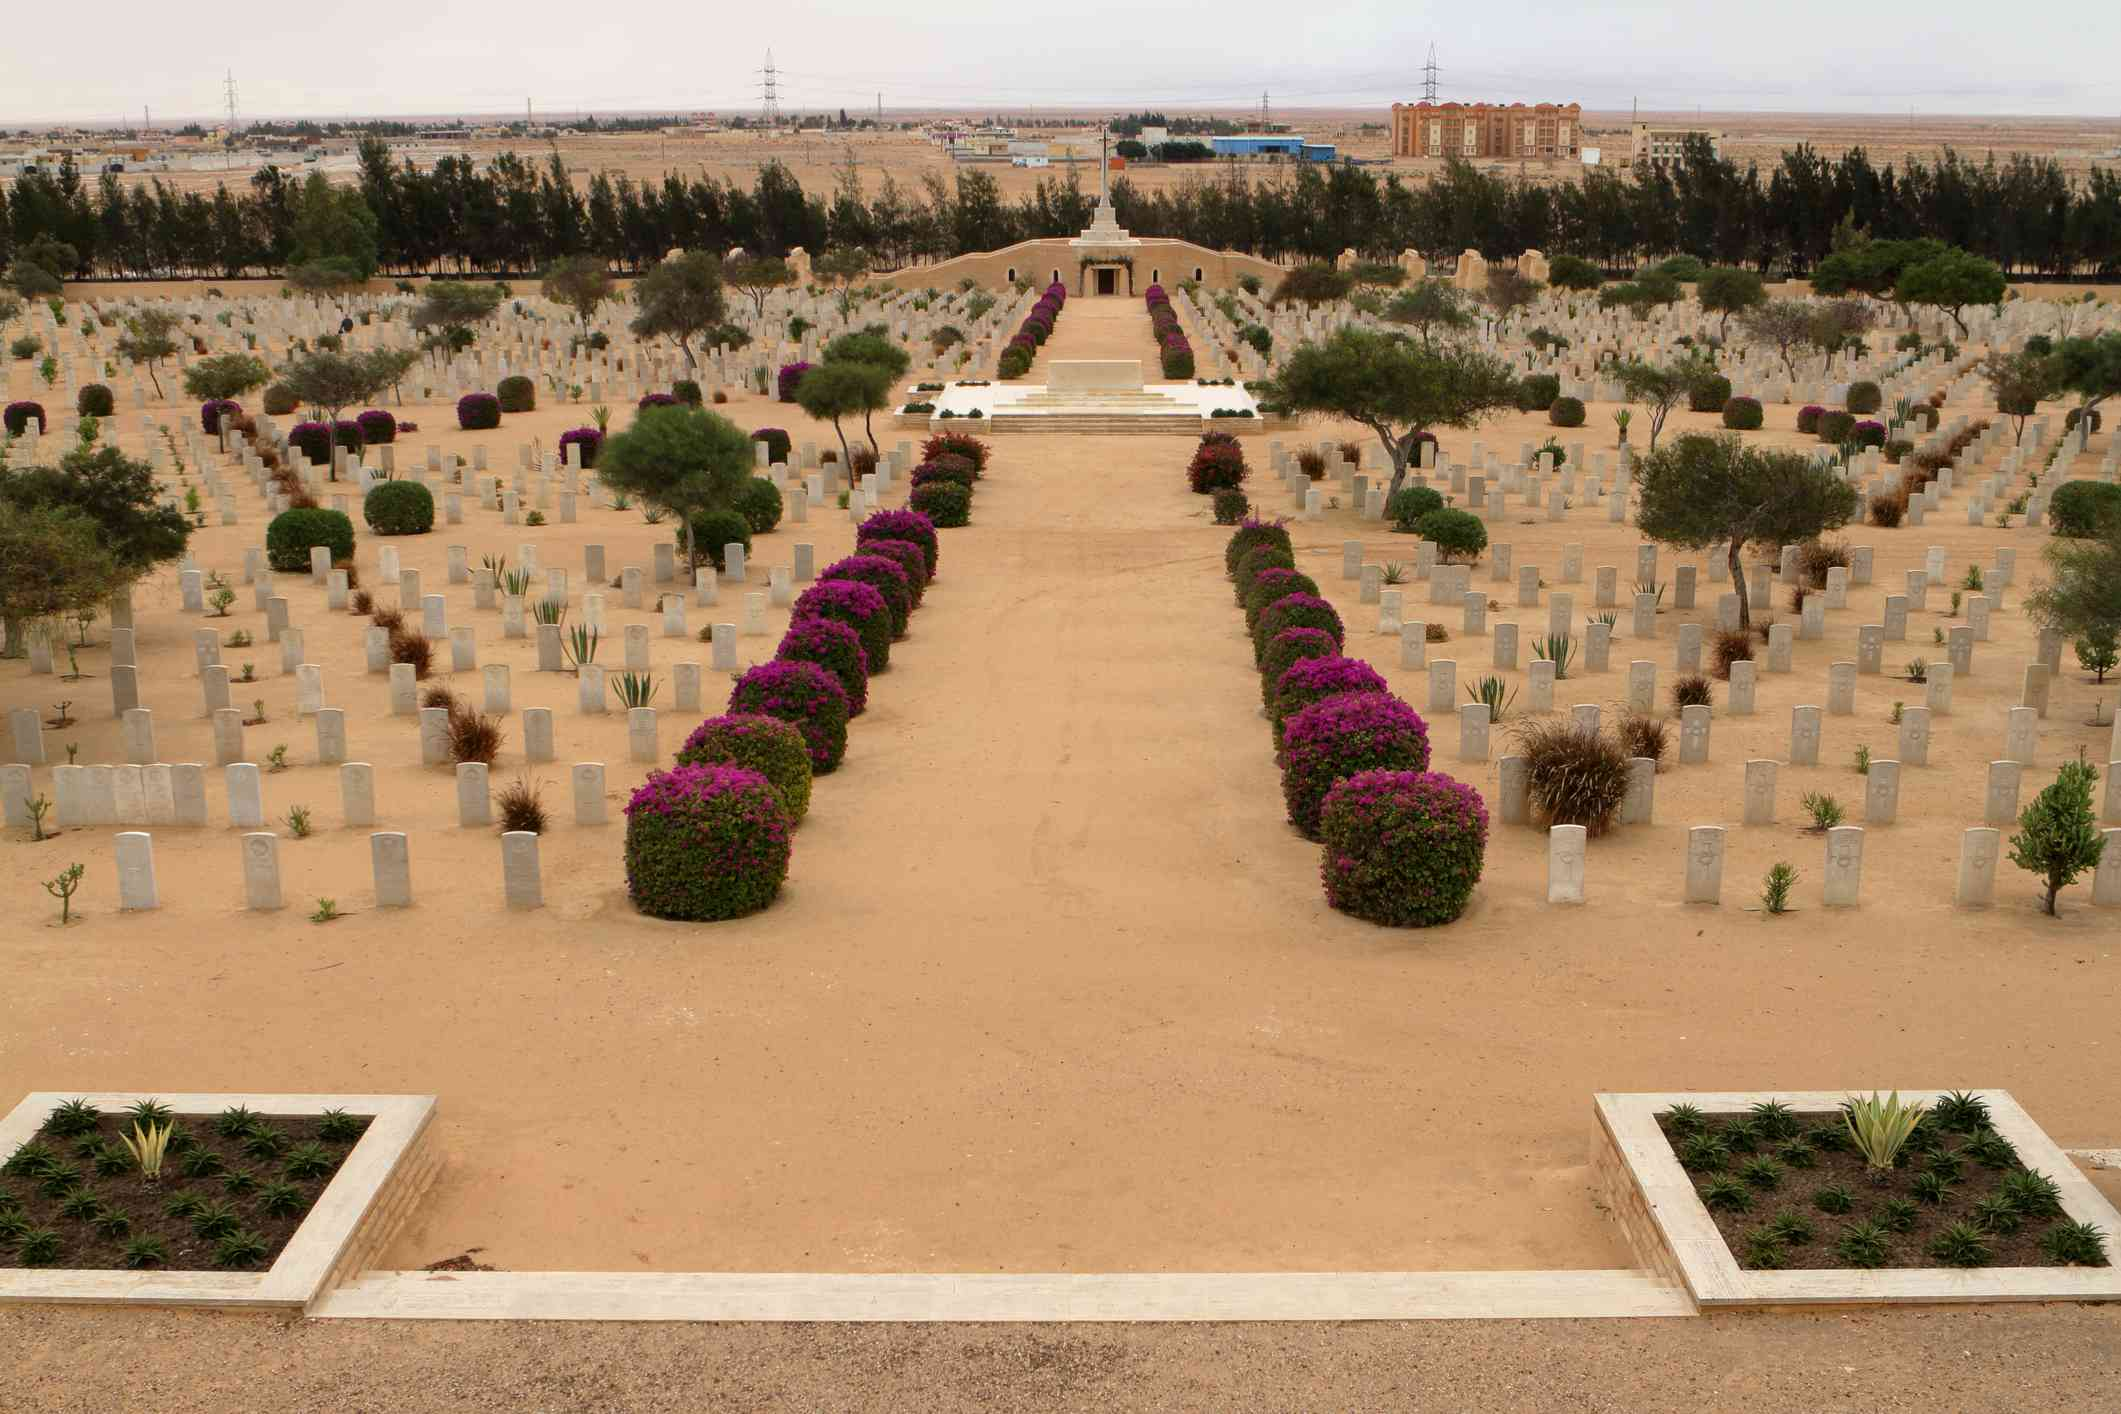 Commonwealth war cemetery at El Alamein, Egypt